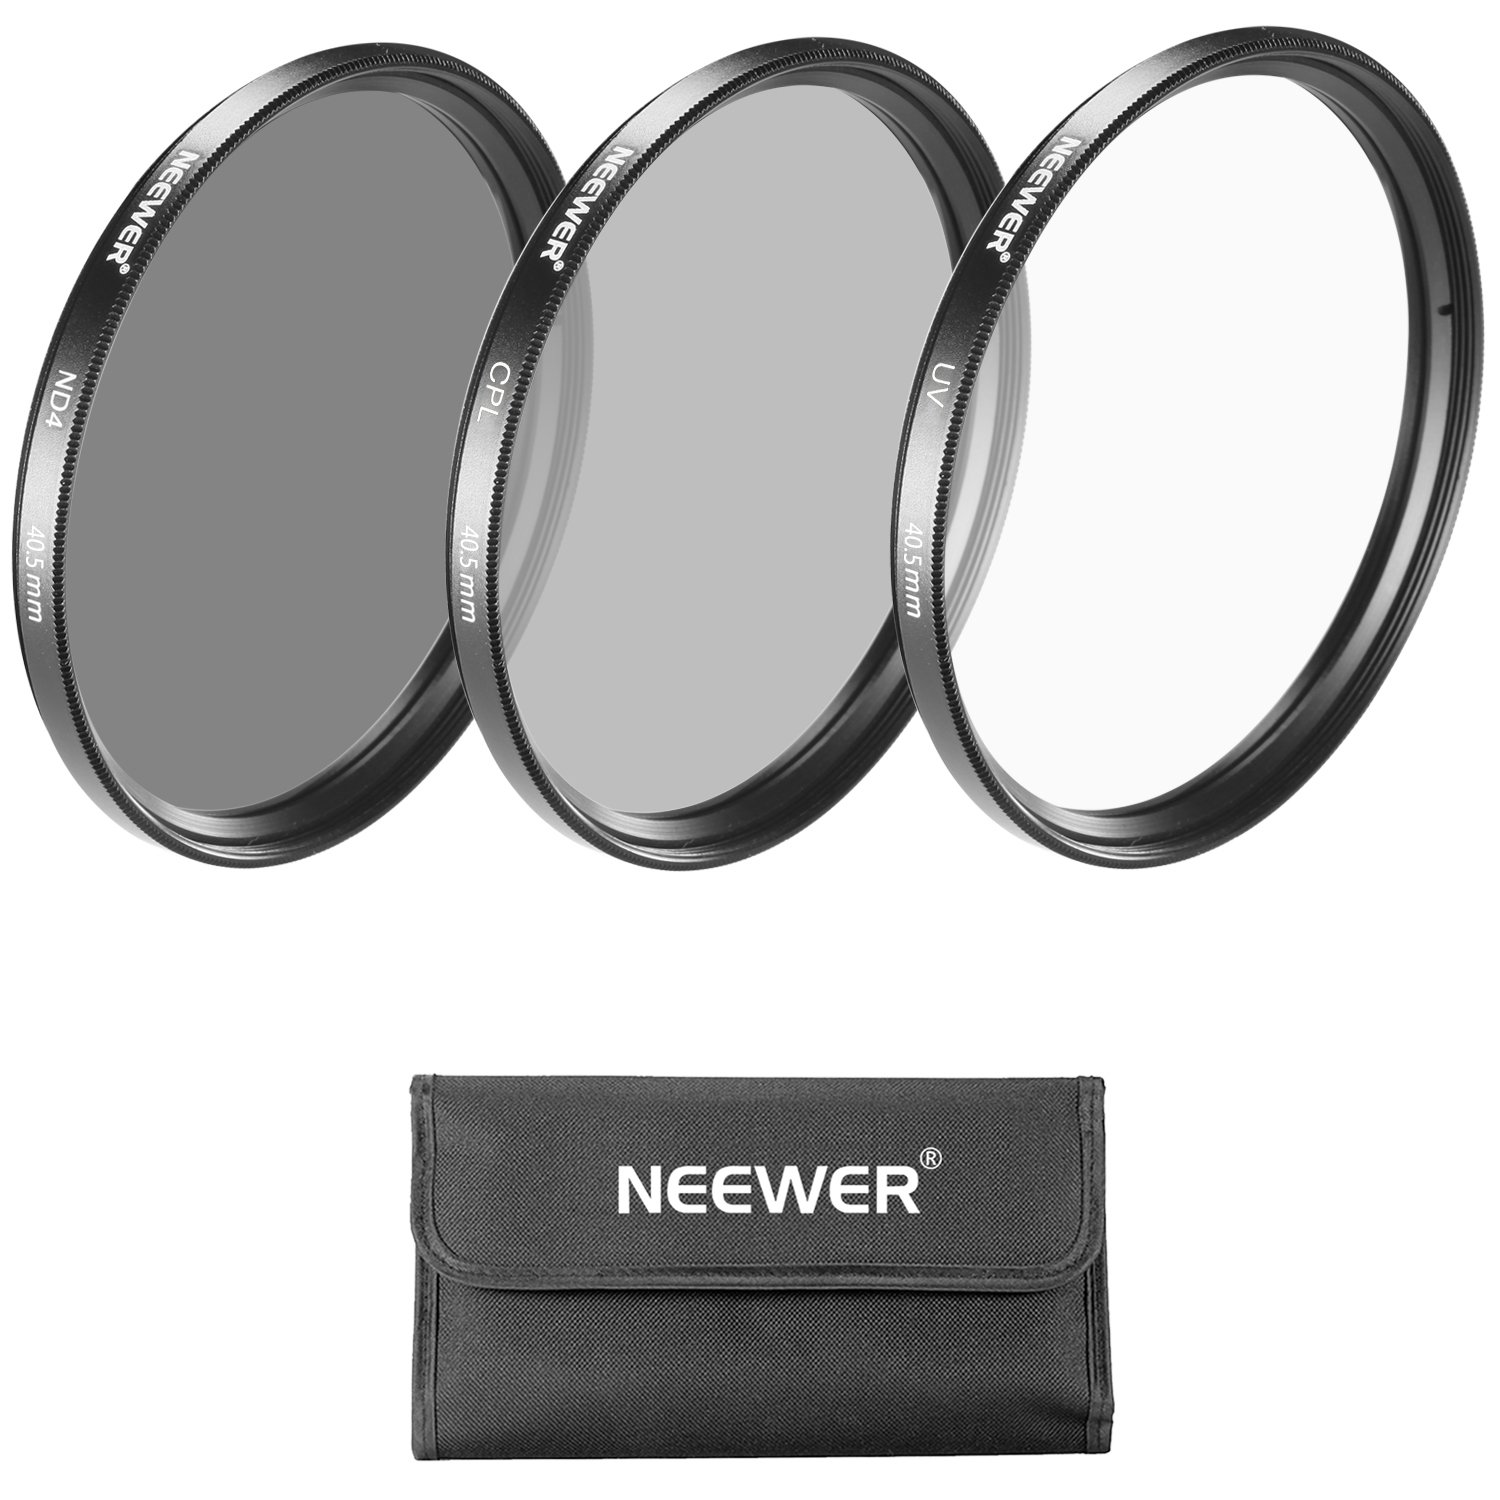 Neewer 40.5MM Lens Filter Kit(UV+CPL+ND4) with Filter Pouch for Sony A6000, NEX Series Cameras with 16-50mm Lens and Samsung NX300 with 20-50mm Lens